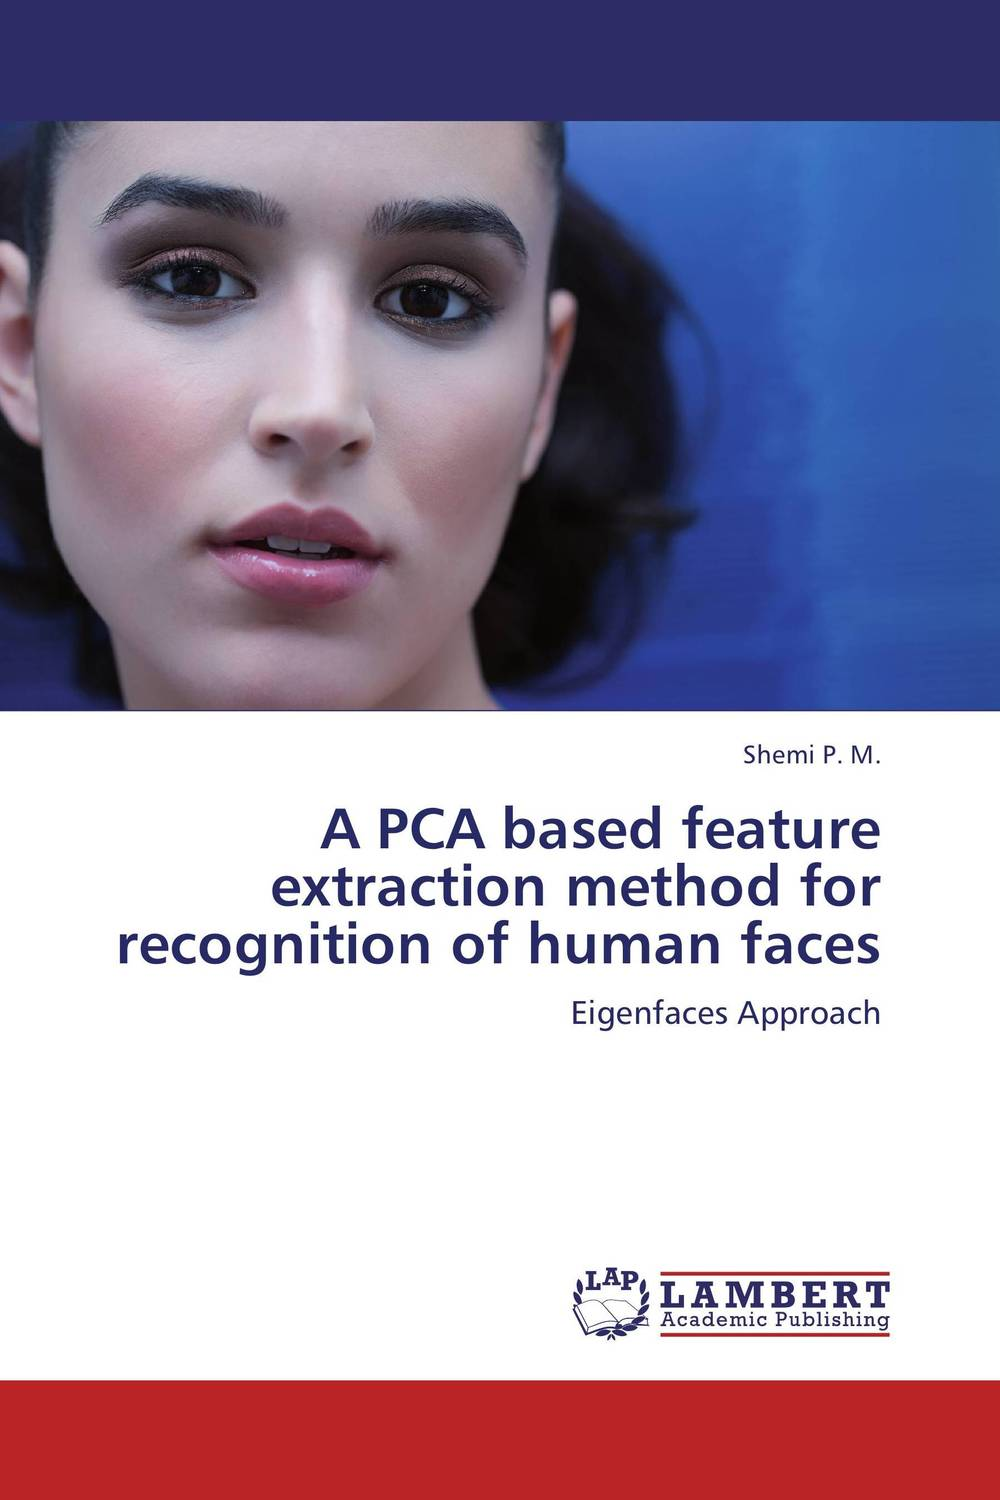 все цены на A PCA based feature extraction method for recognition of human faces онлайн